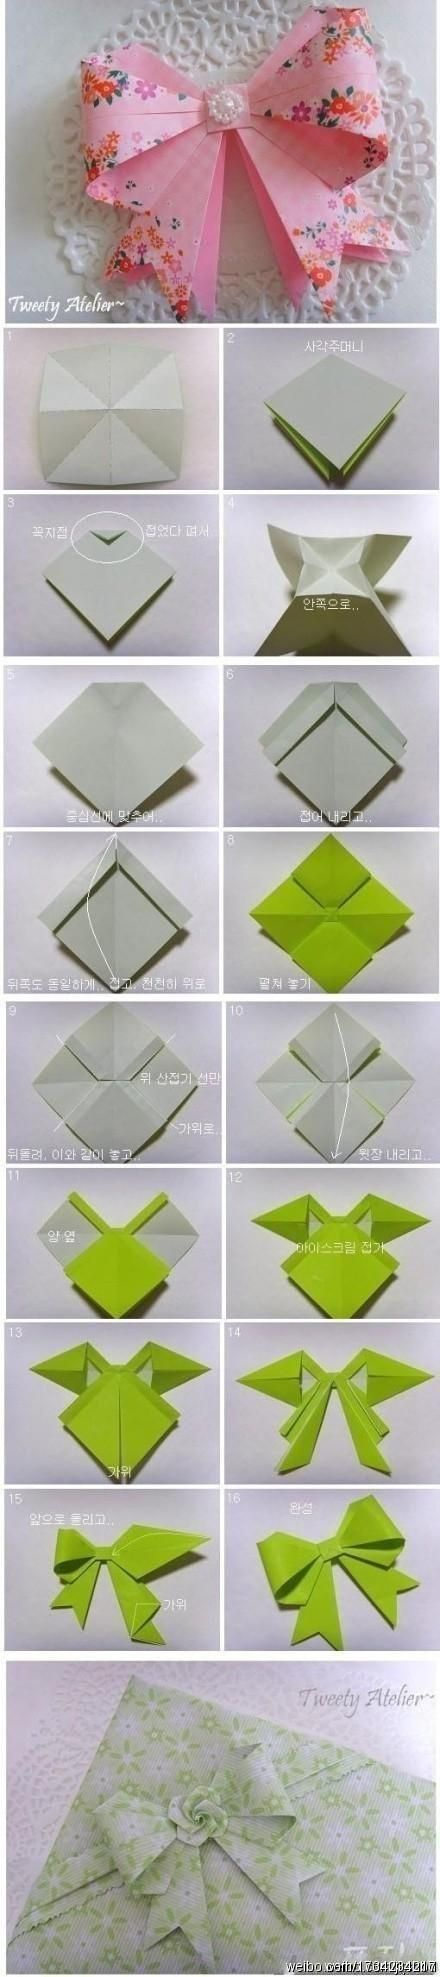 How to fold this paper bow.